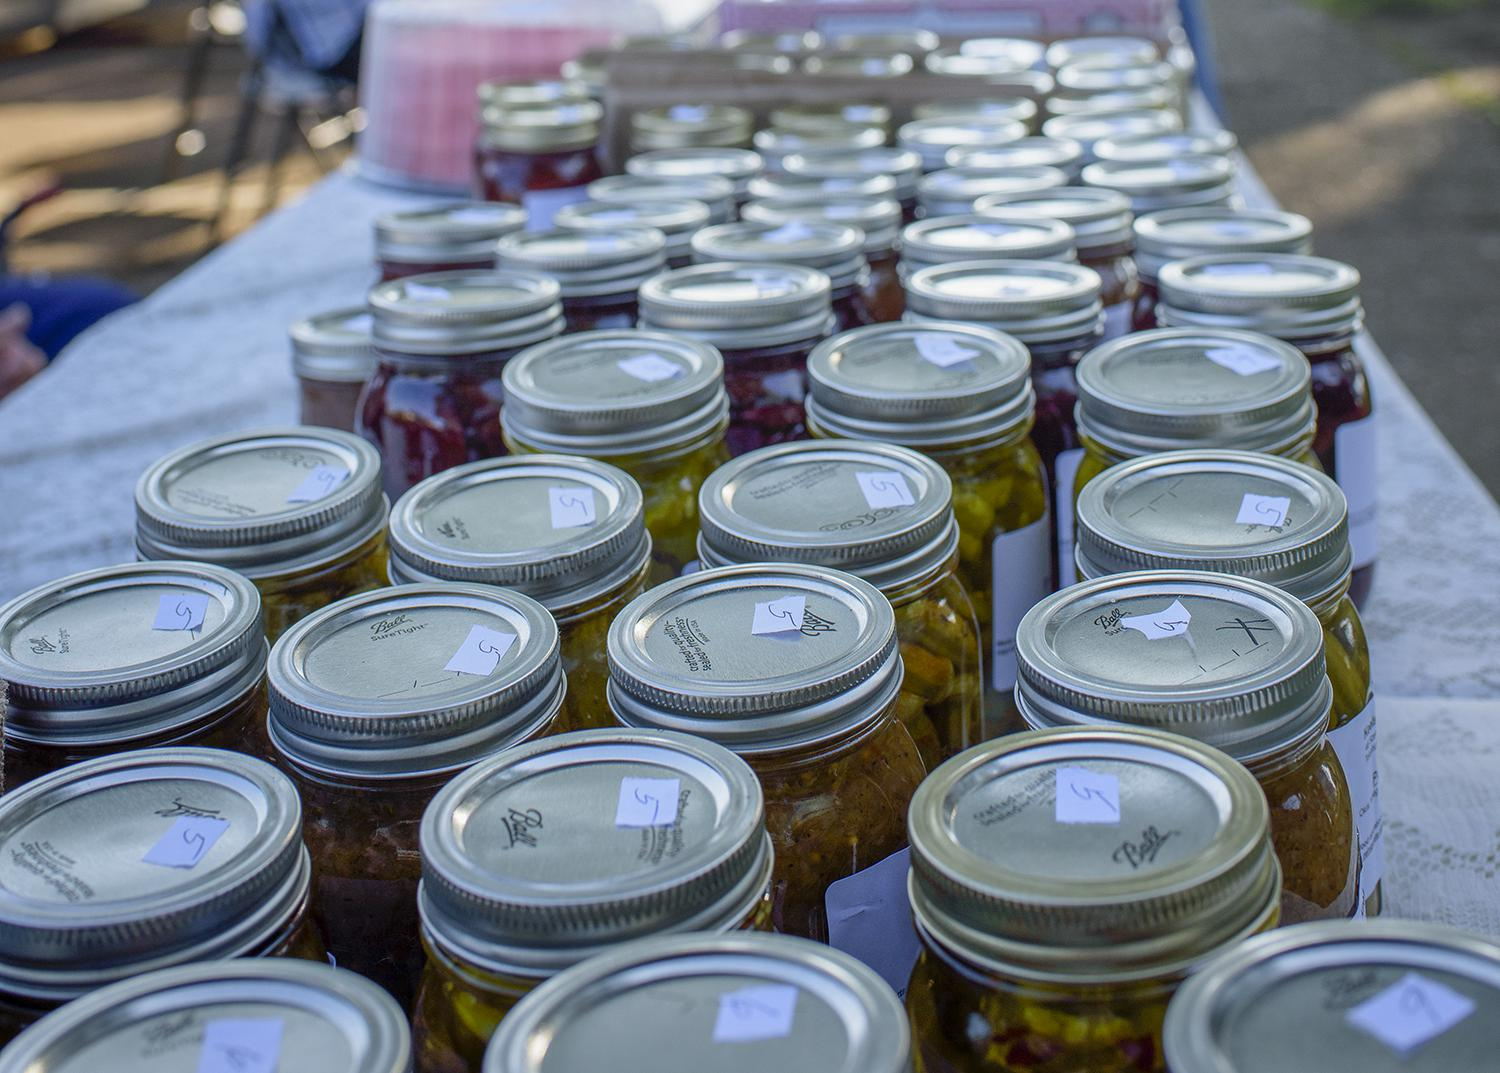 Rows of canning jars line a table at an open-air marketplace.